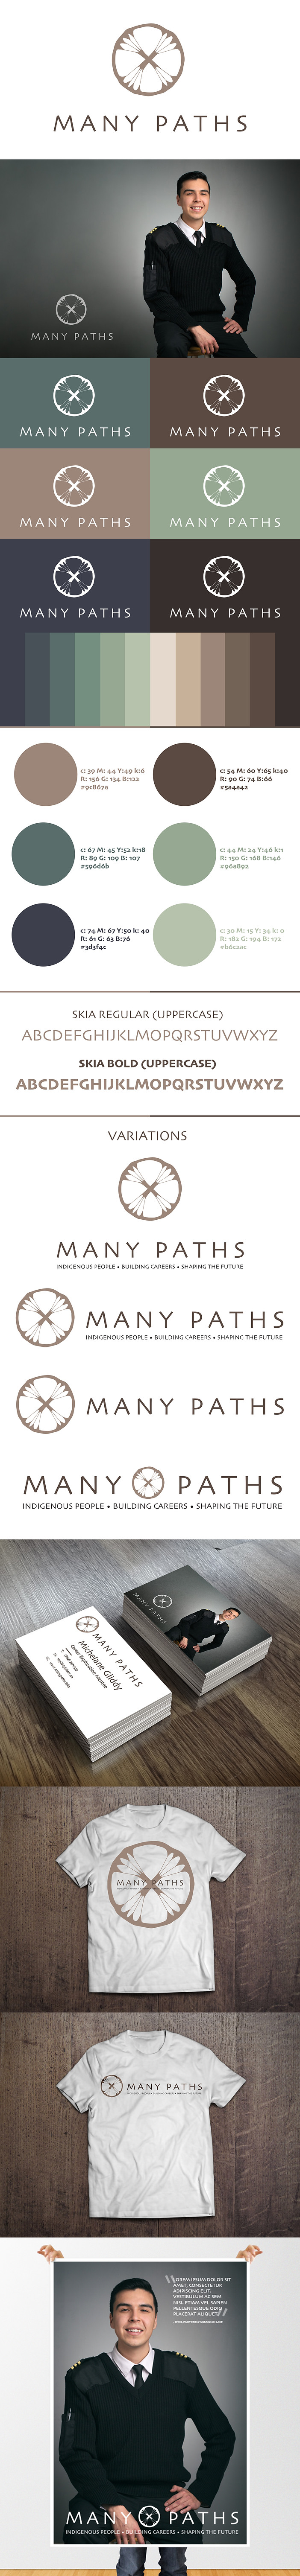 many-paths-logo-guide-v2.jpg